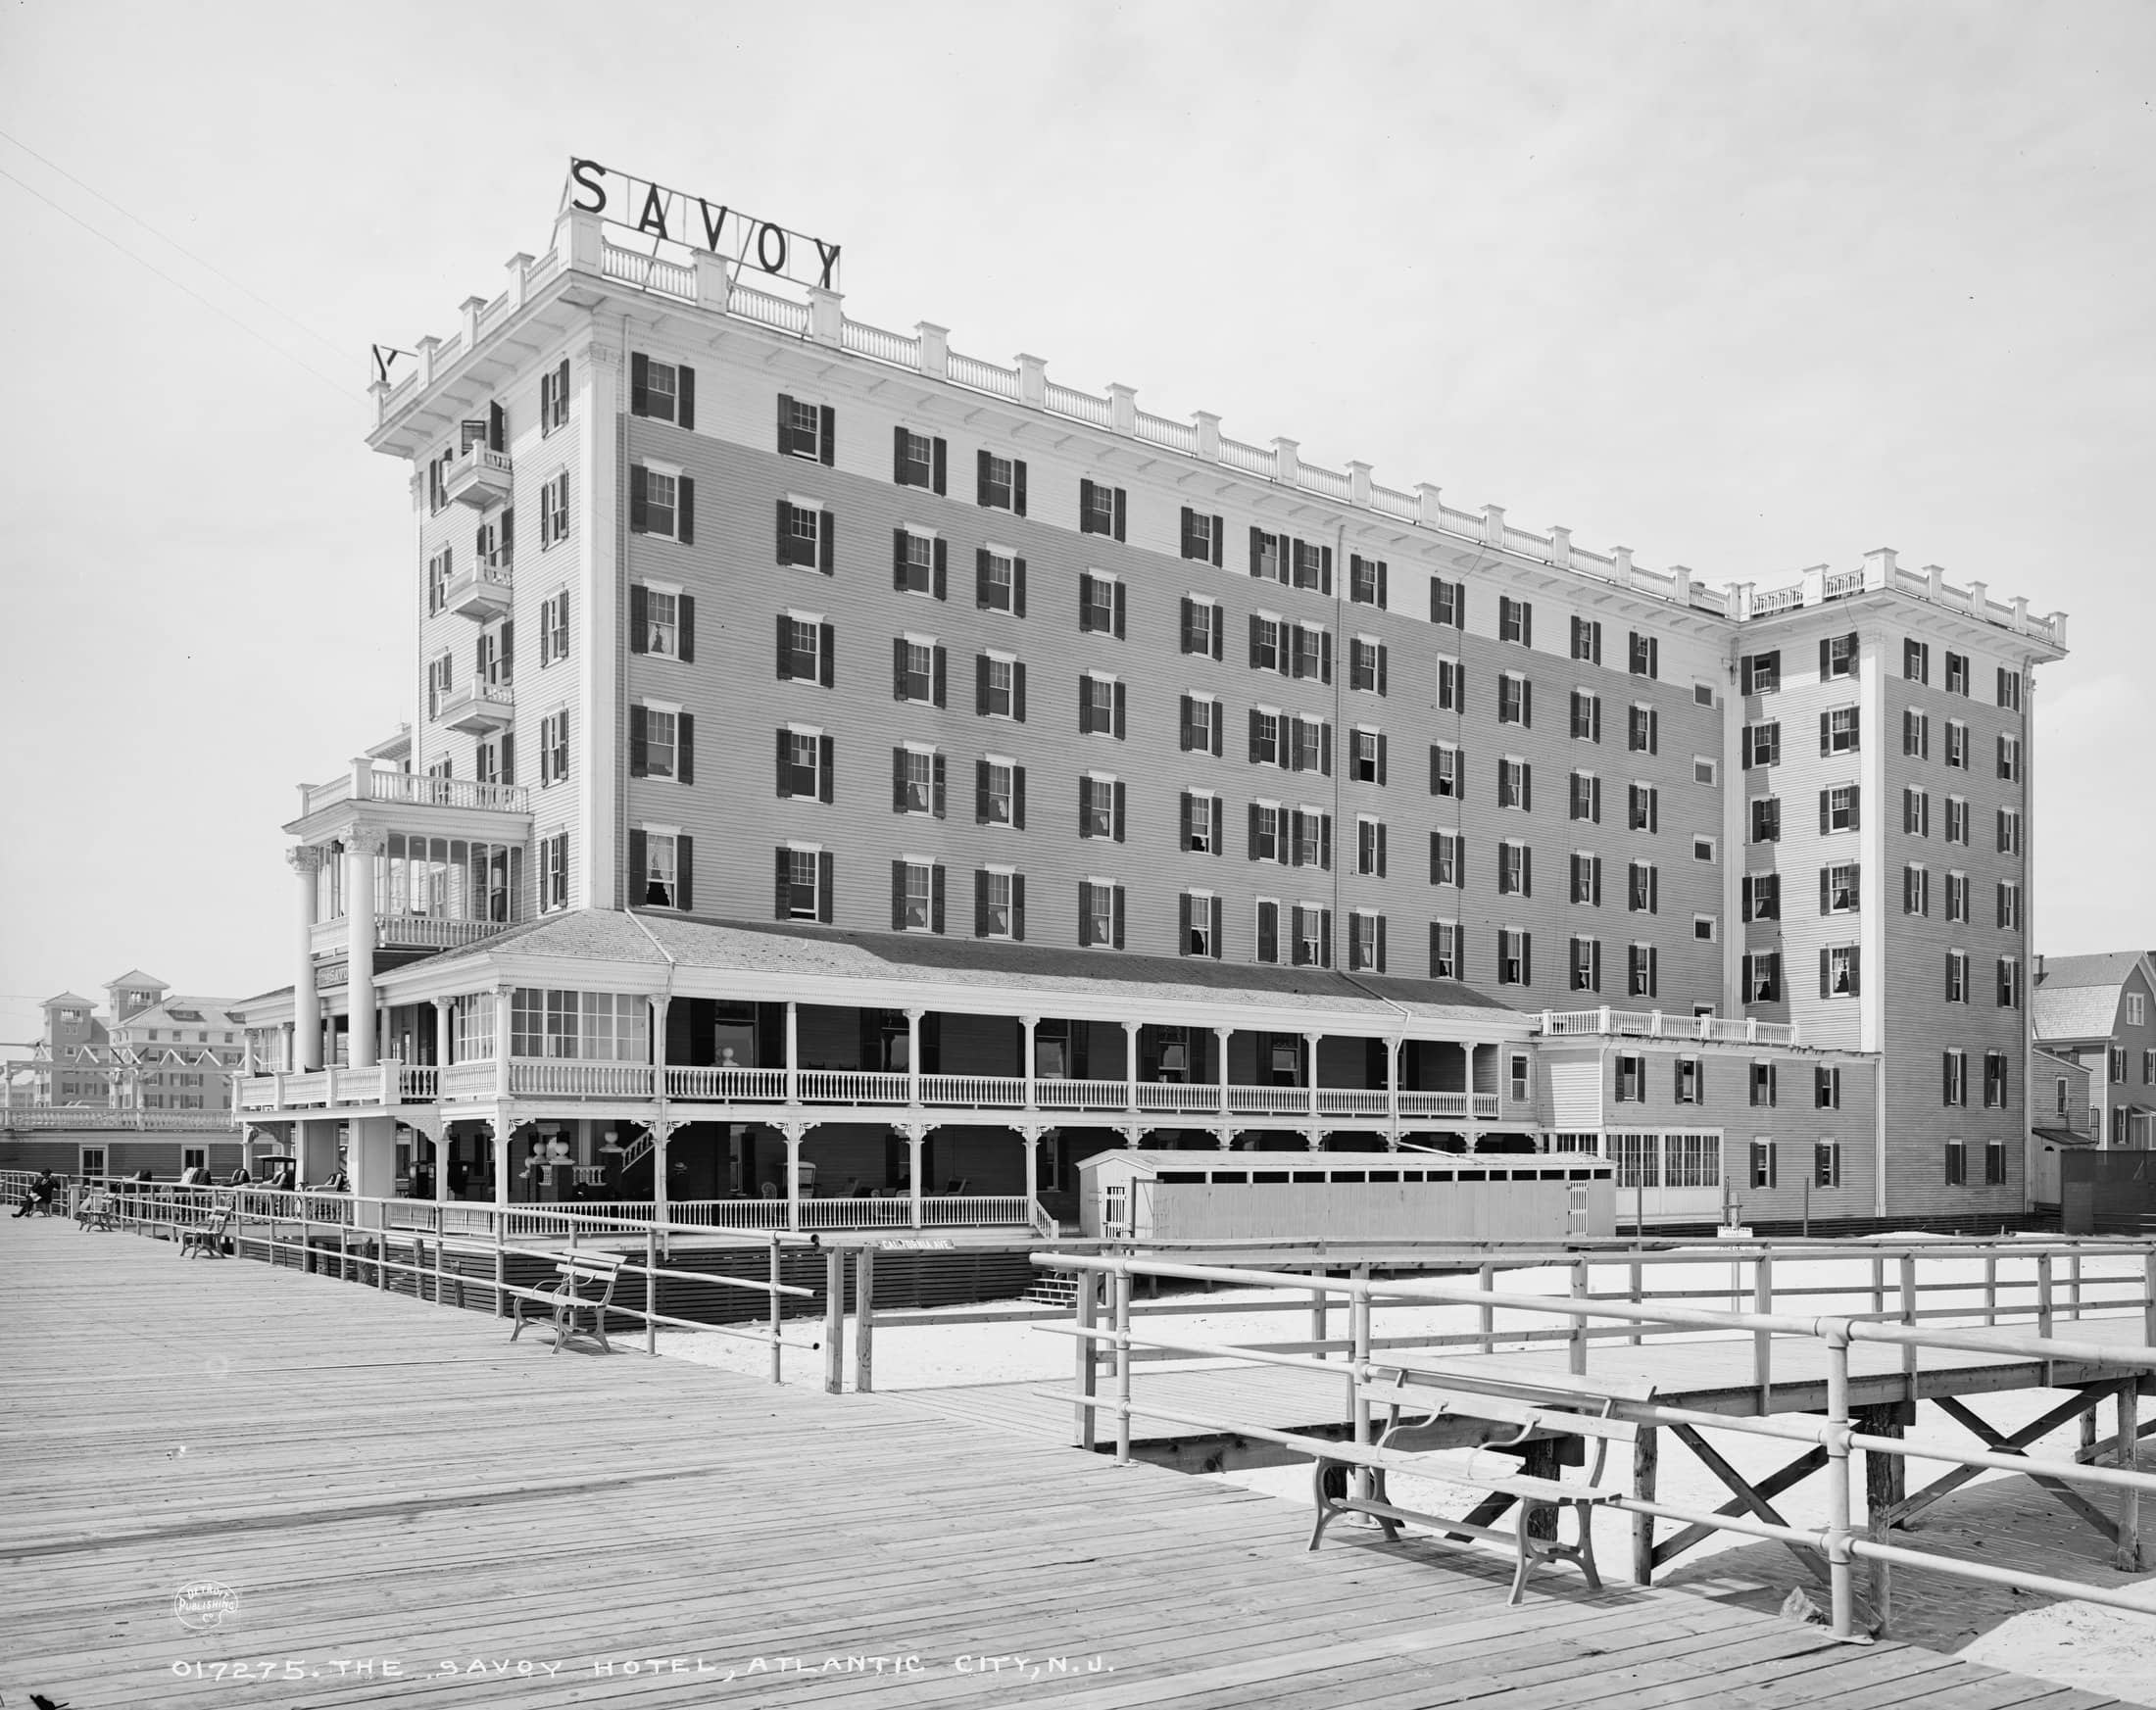 Savoy Hotel, Atlantic City in the early 1900s